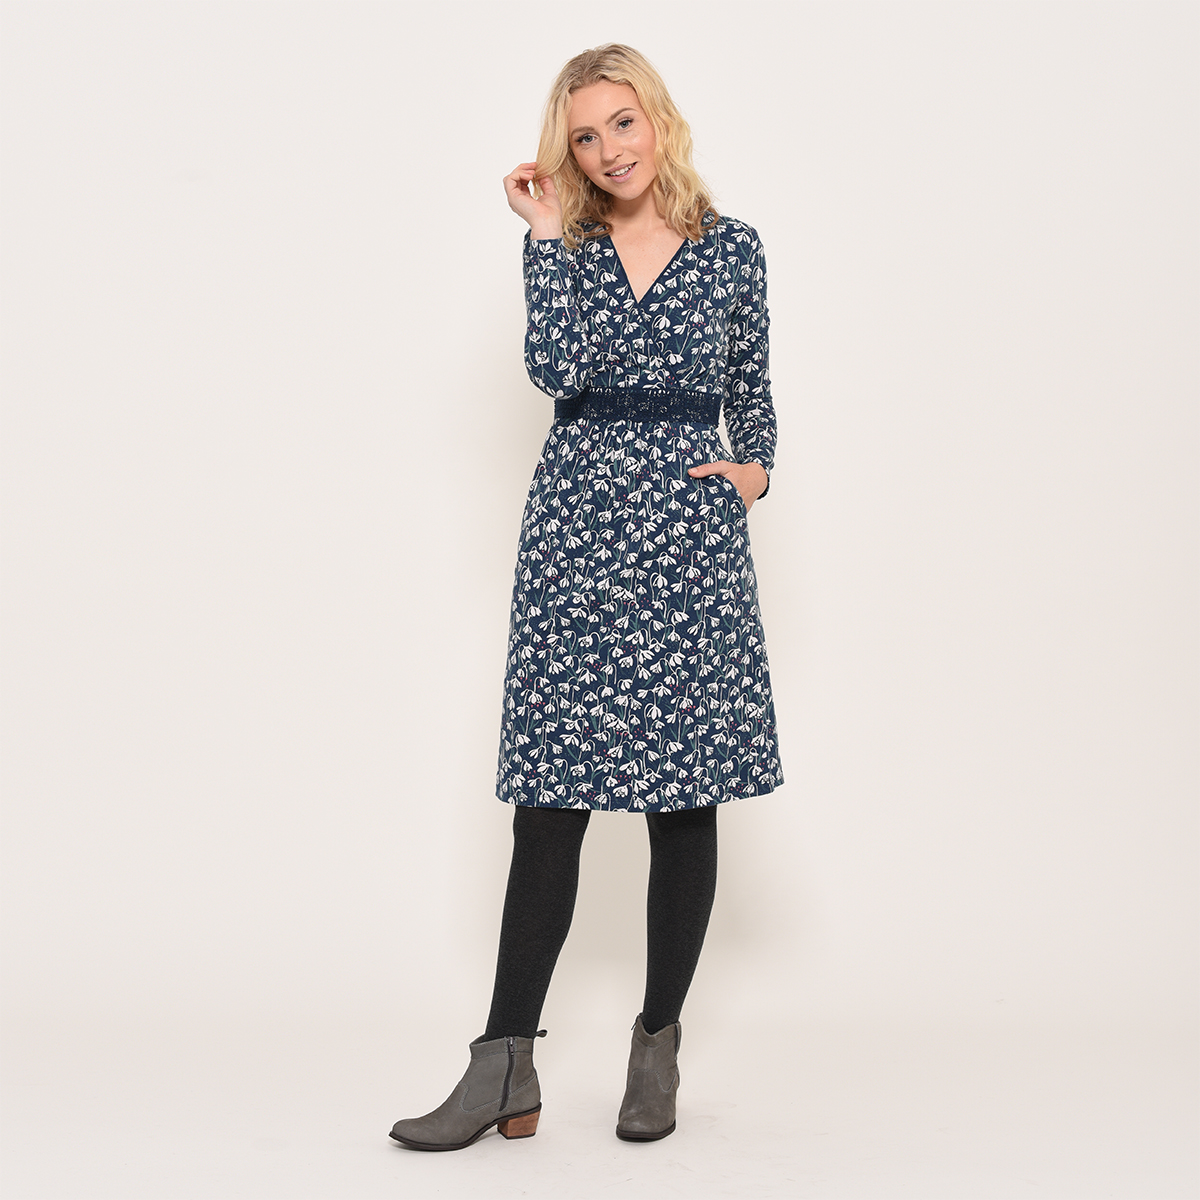 Brakeburn Snowdrop Wrap Dress - size 8 only left